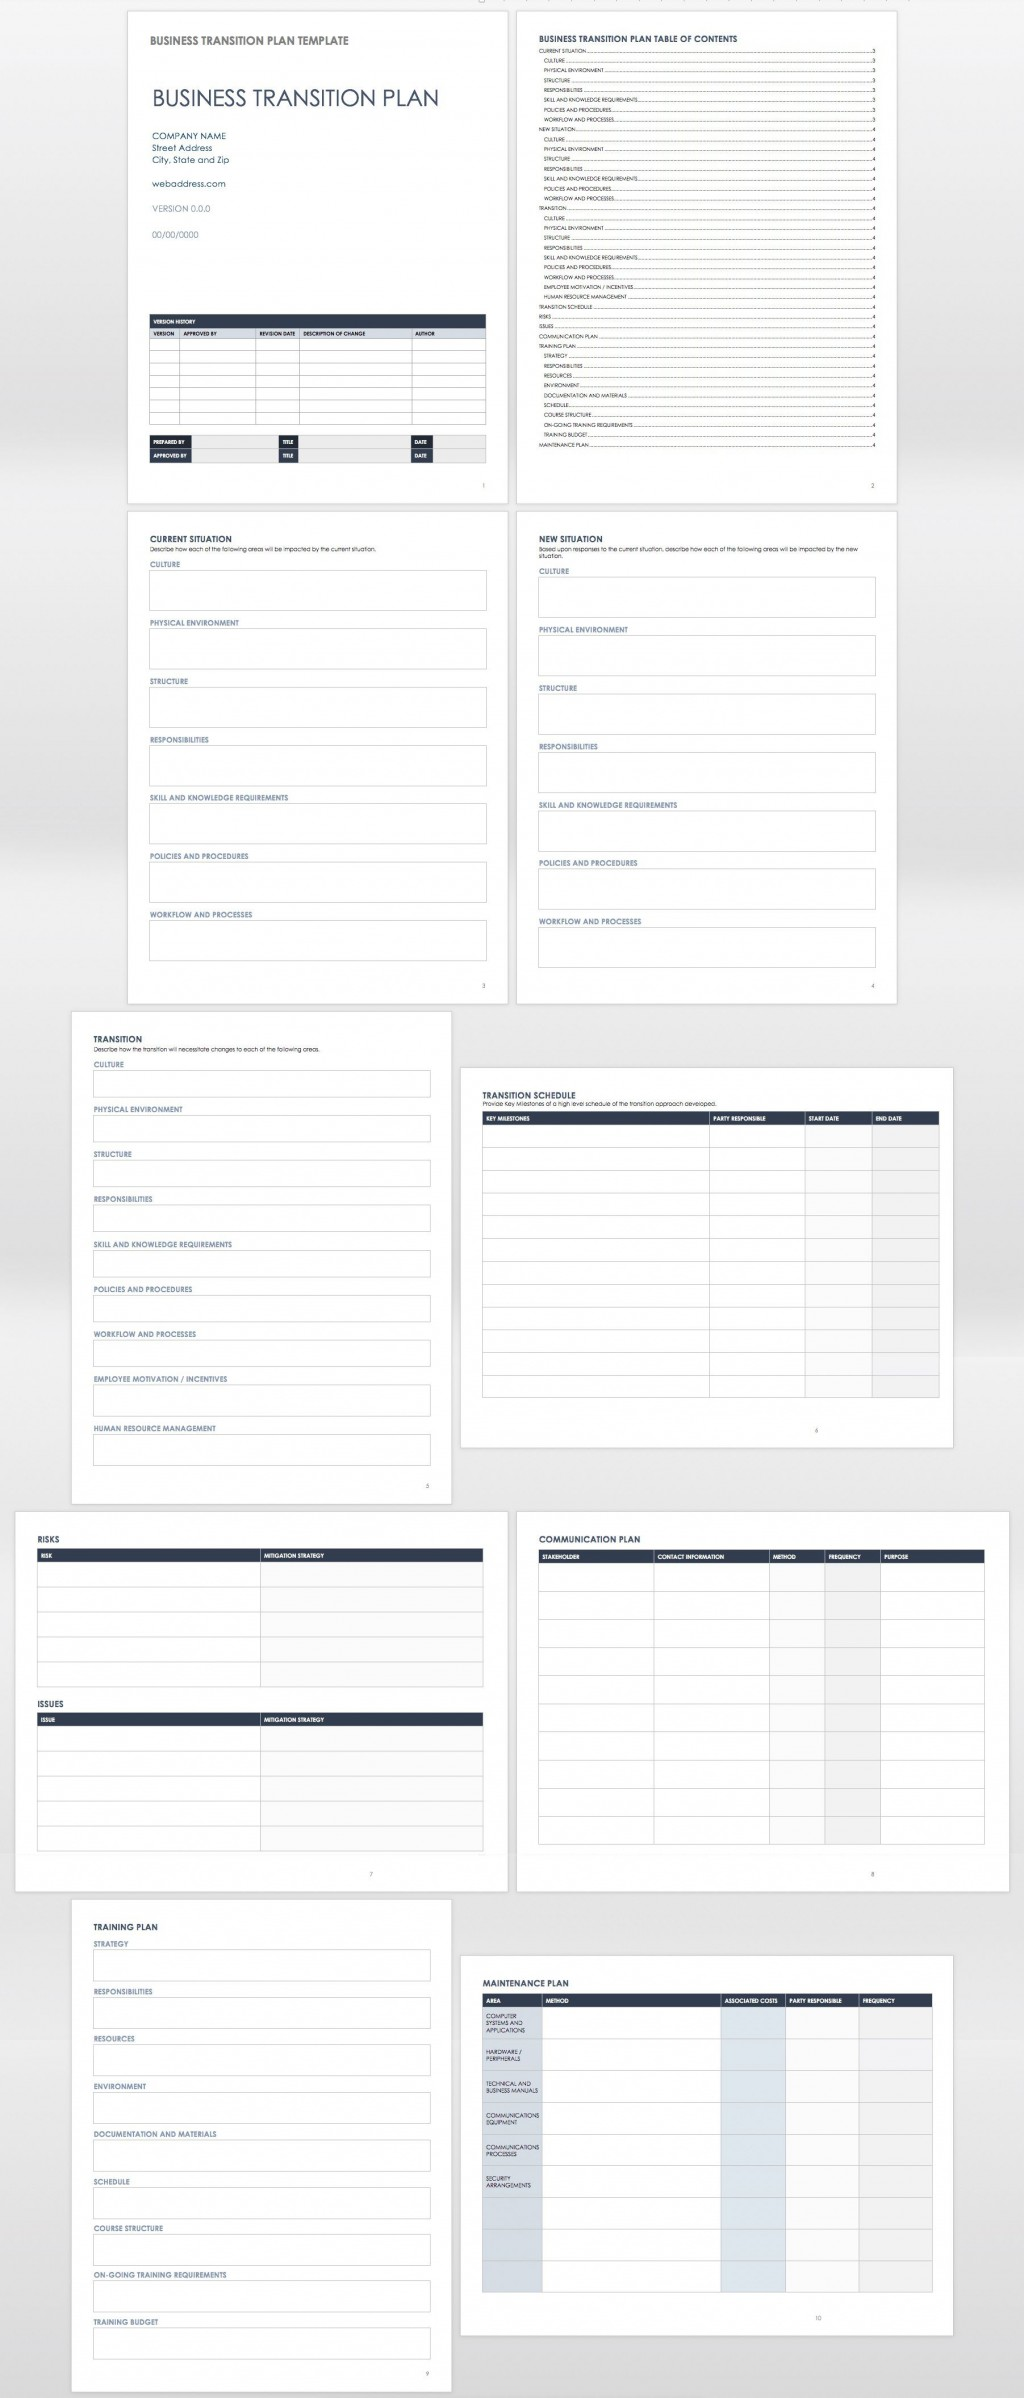 002 Top Employee Transition Plan Template Example  For Leaving Job Excel Word InternalLarge